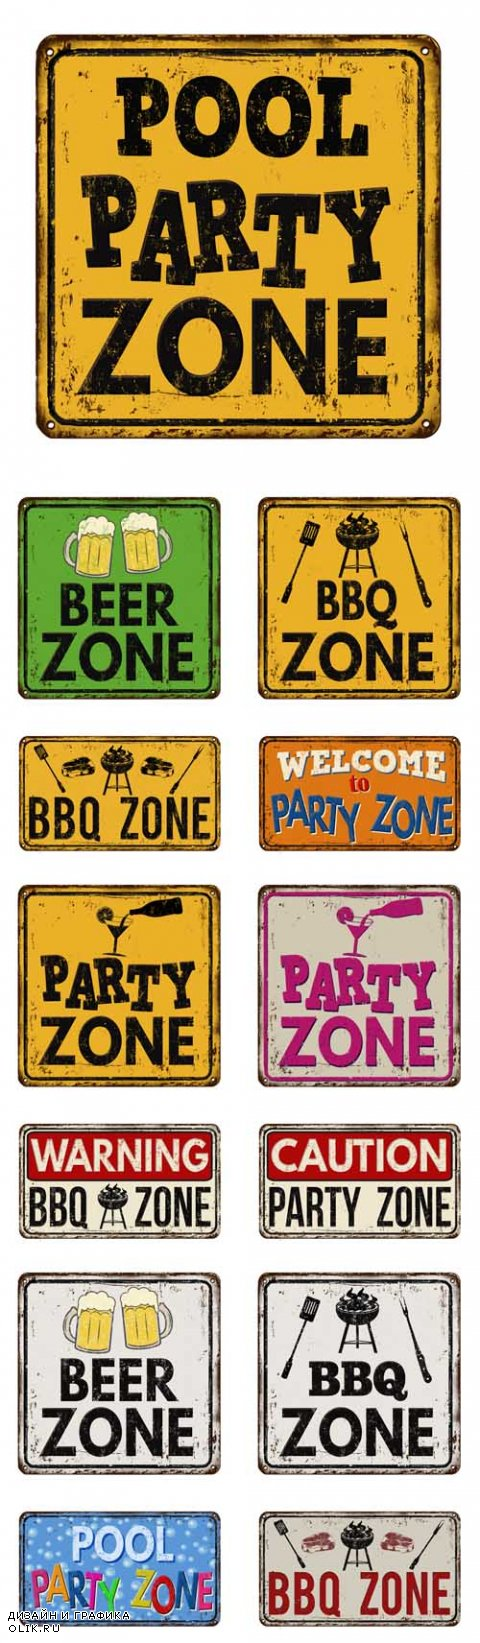 Vector Party and BBQ Zone Vintage Rusty Metal Signs